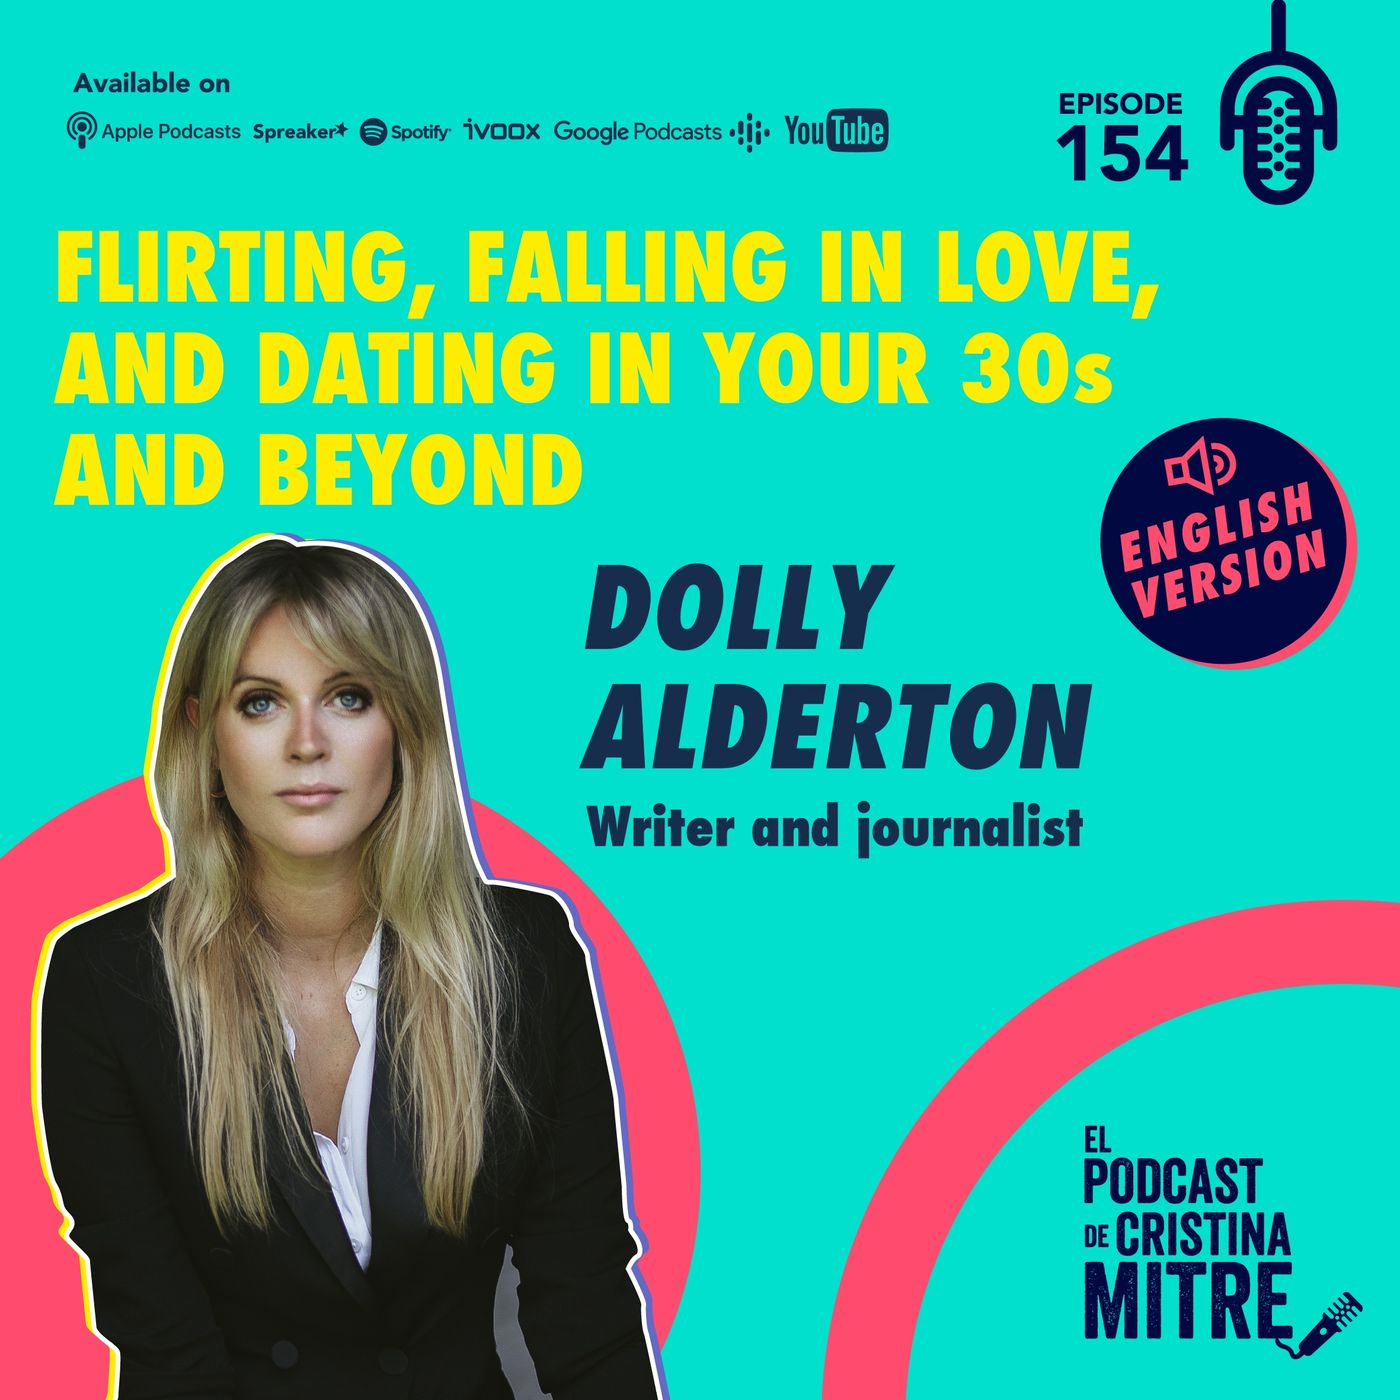 Flirting, falling in love, and dating in your 30s and beyond with Dolly Alderton. Episode 154